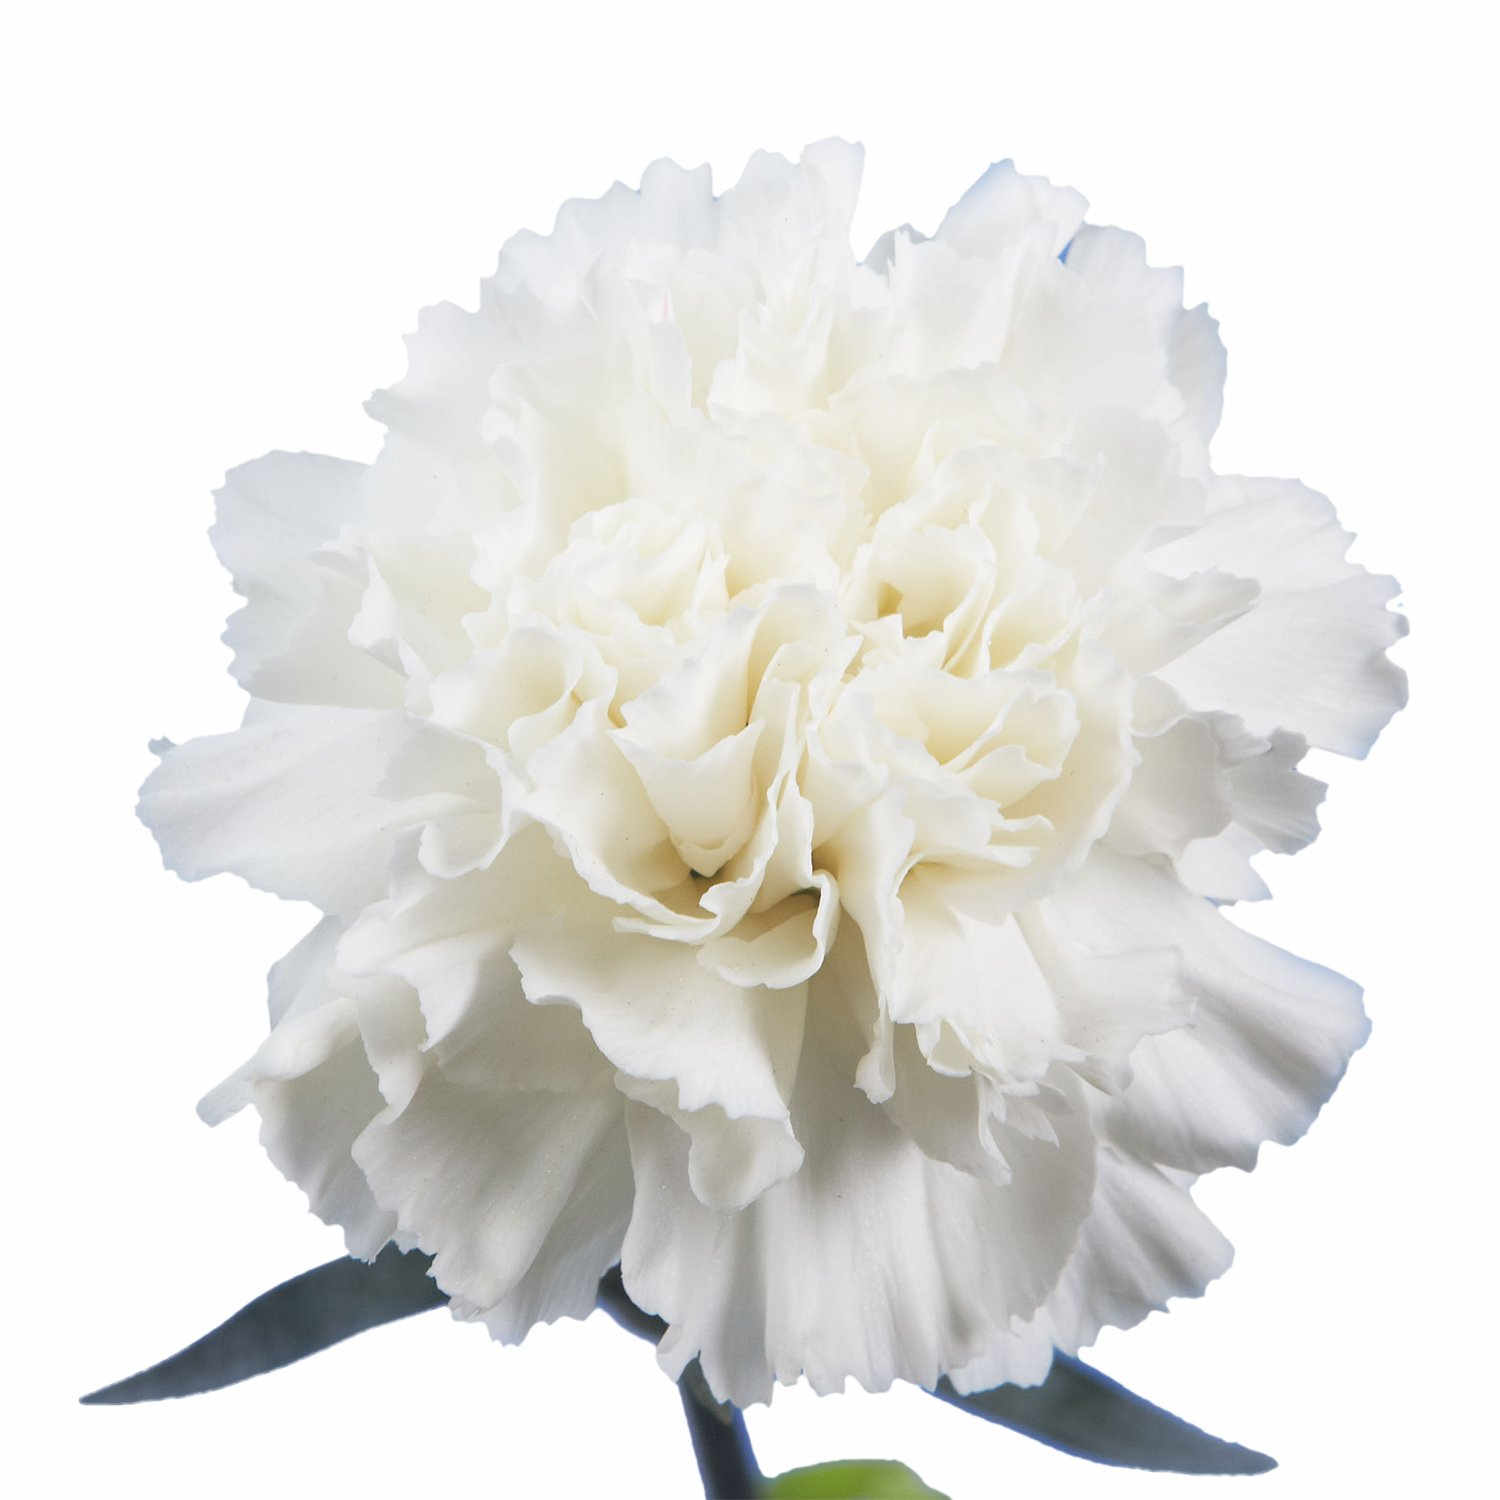 Amazon Globalrose 200 Fresh Cut White Carnations Fresh